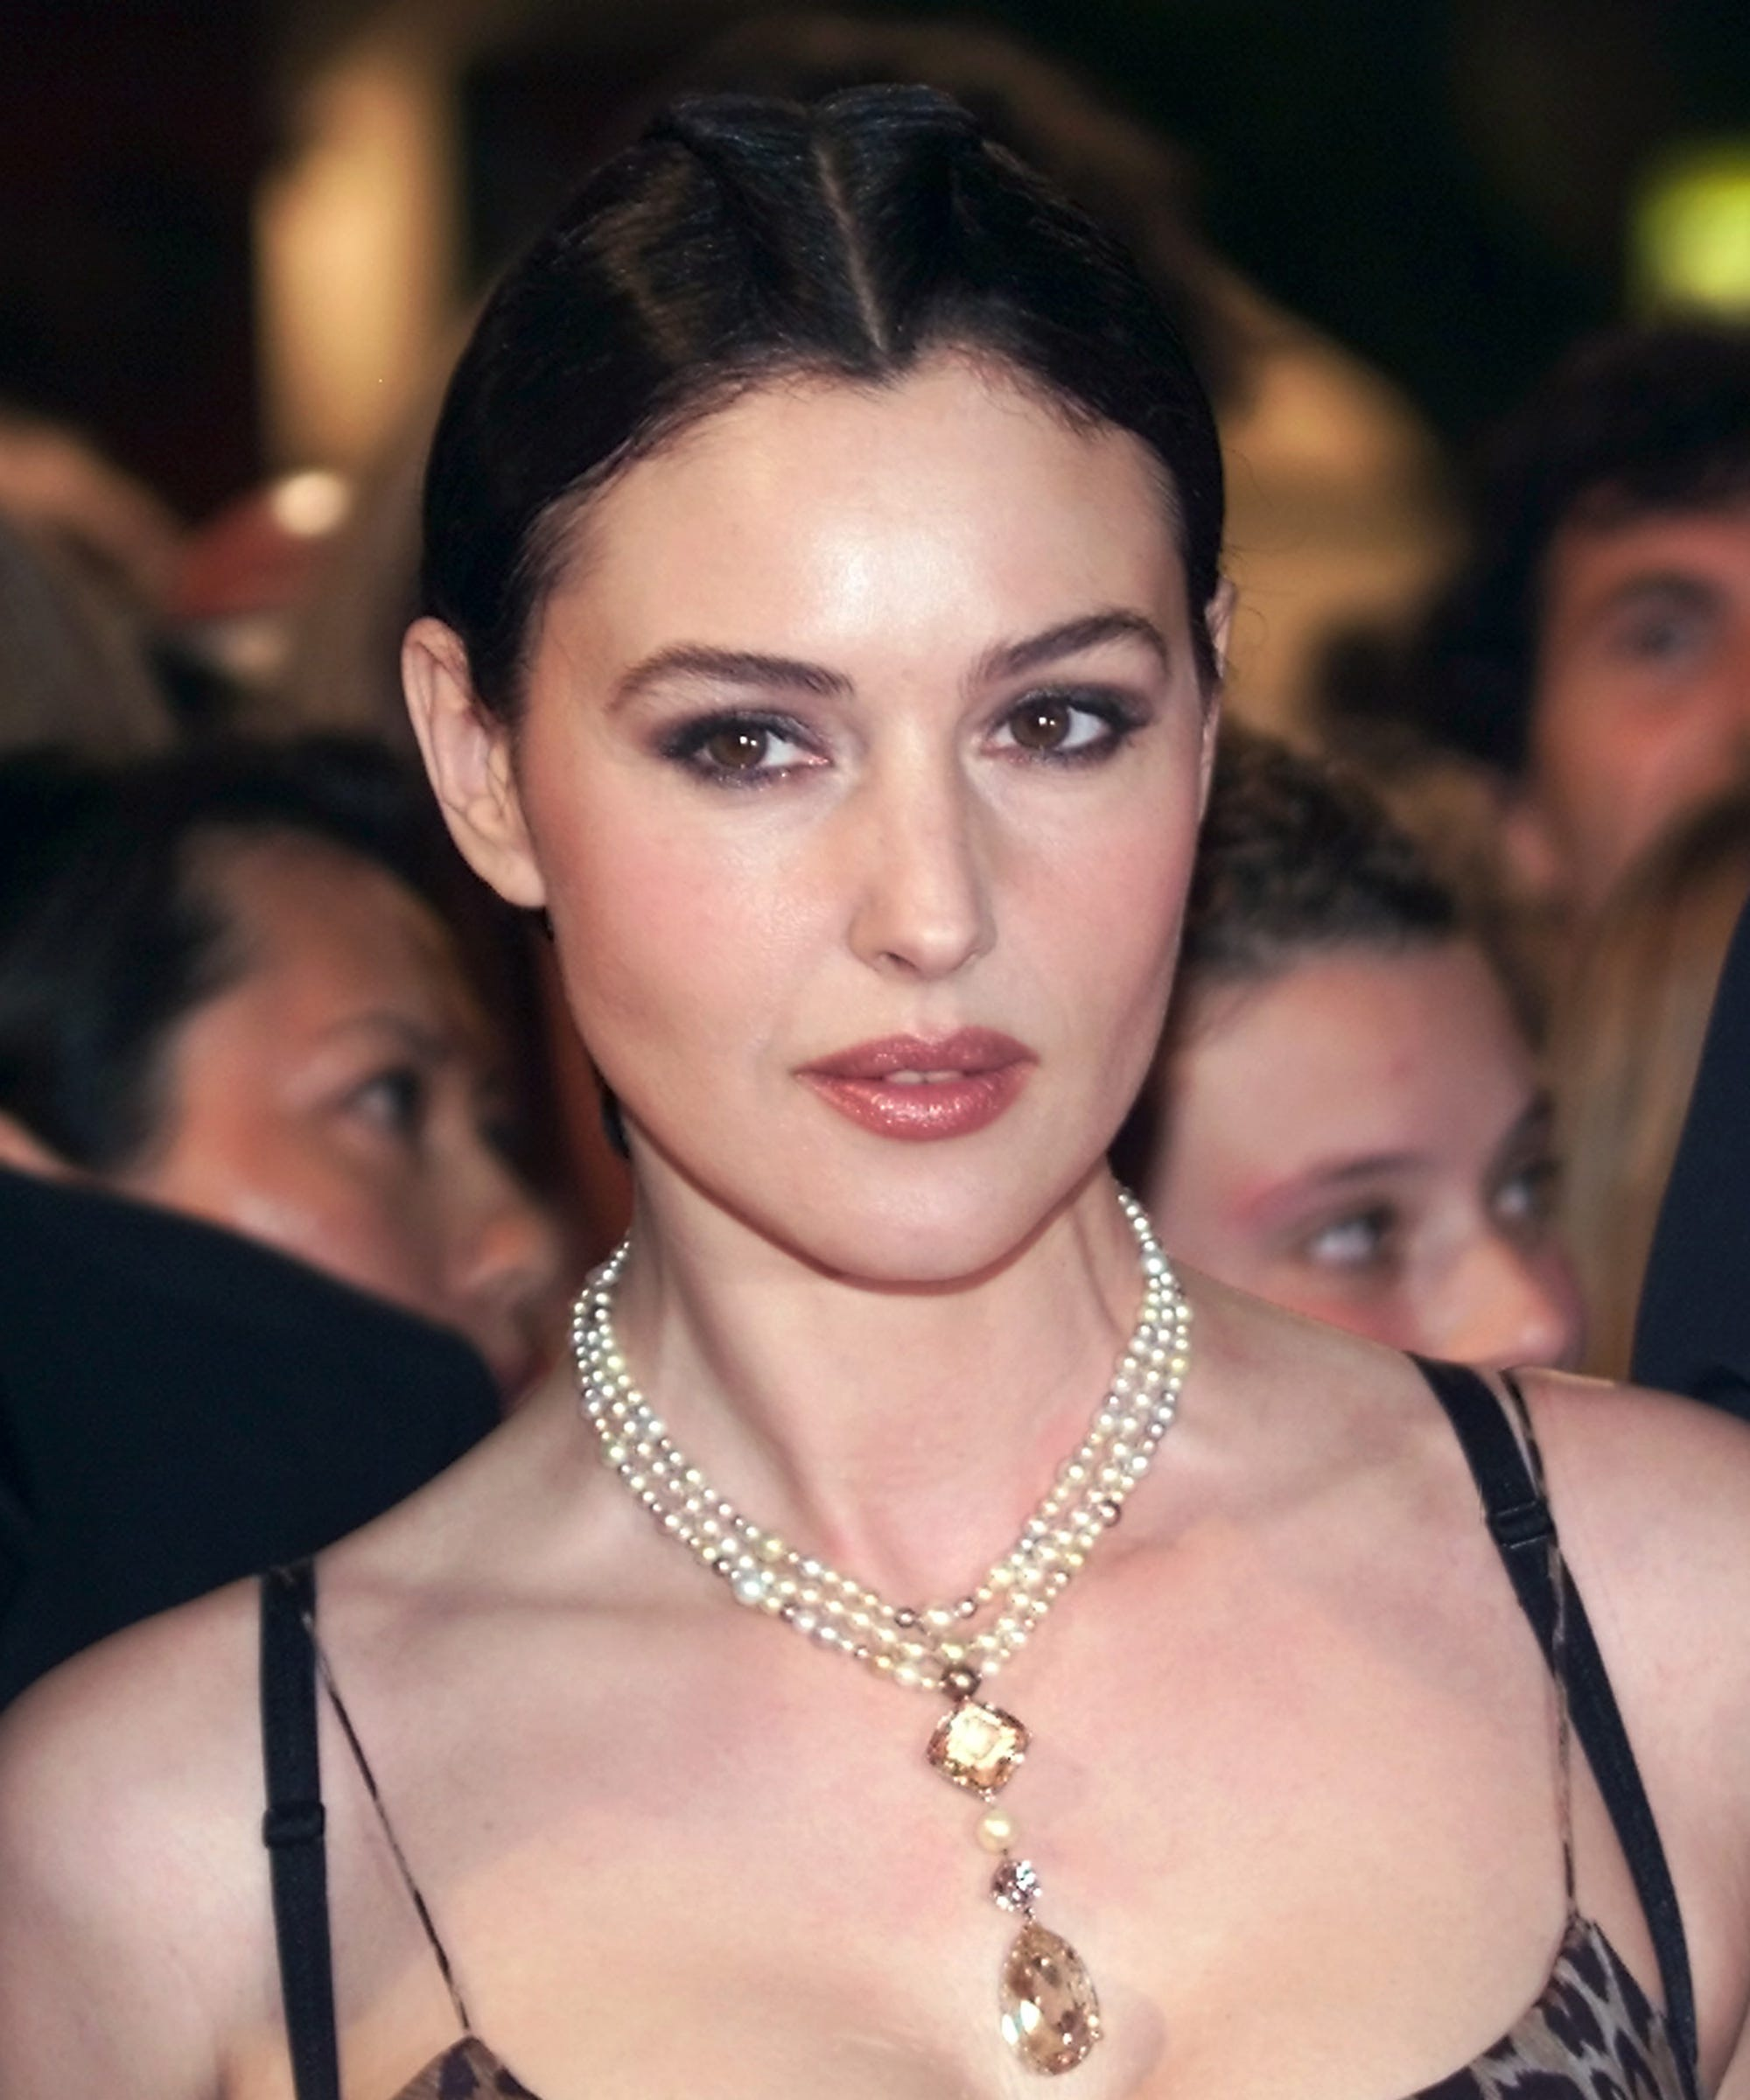 MonicaBellucci_Opener_GettyImages-51503334